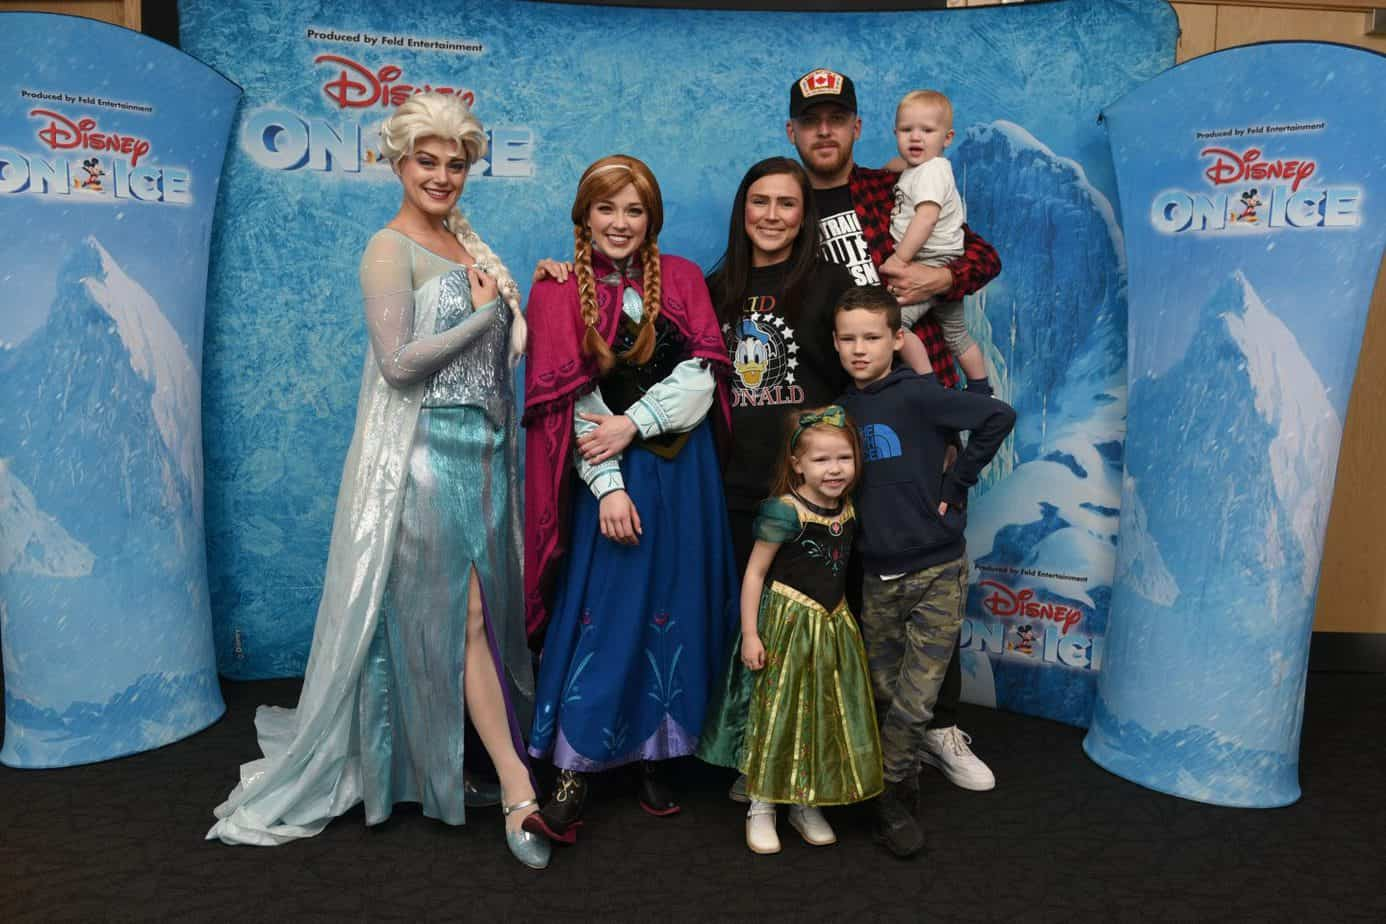 Me with my family with Anna and Else prior to Disney on Ice